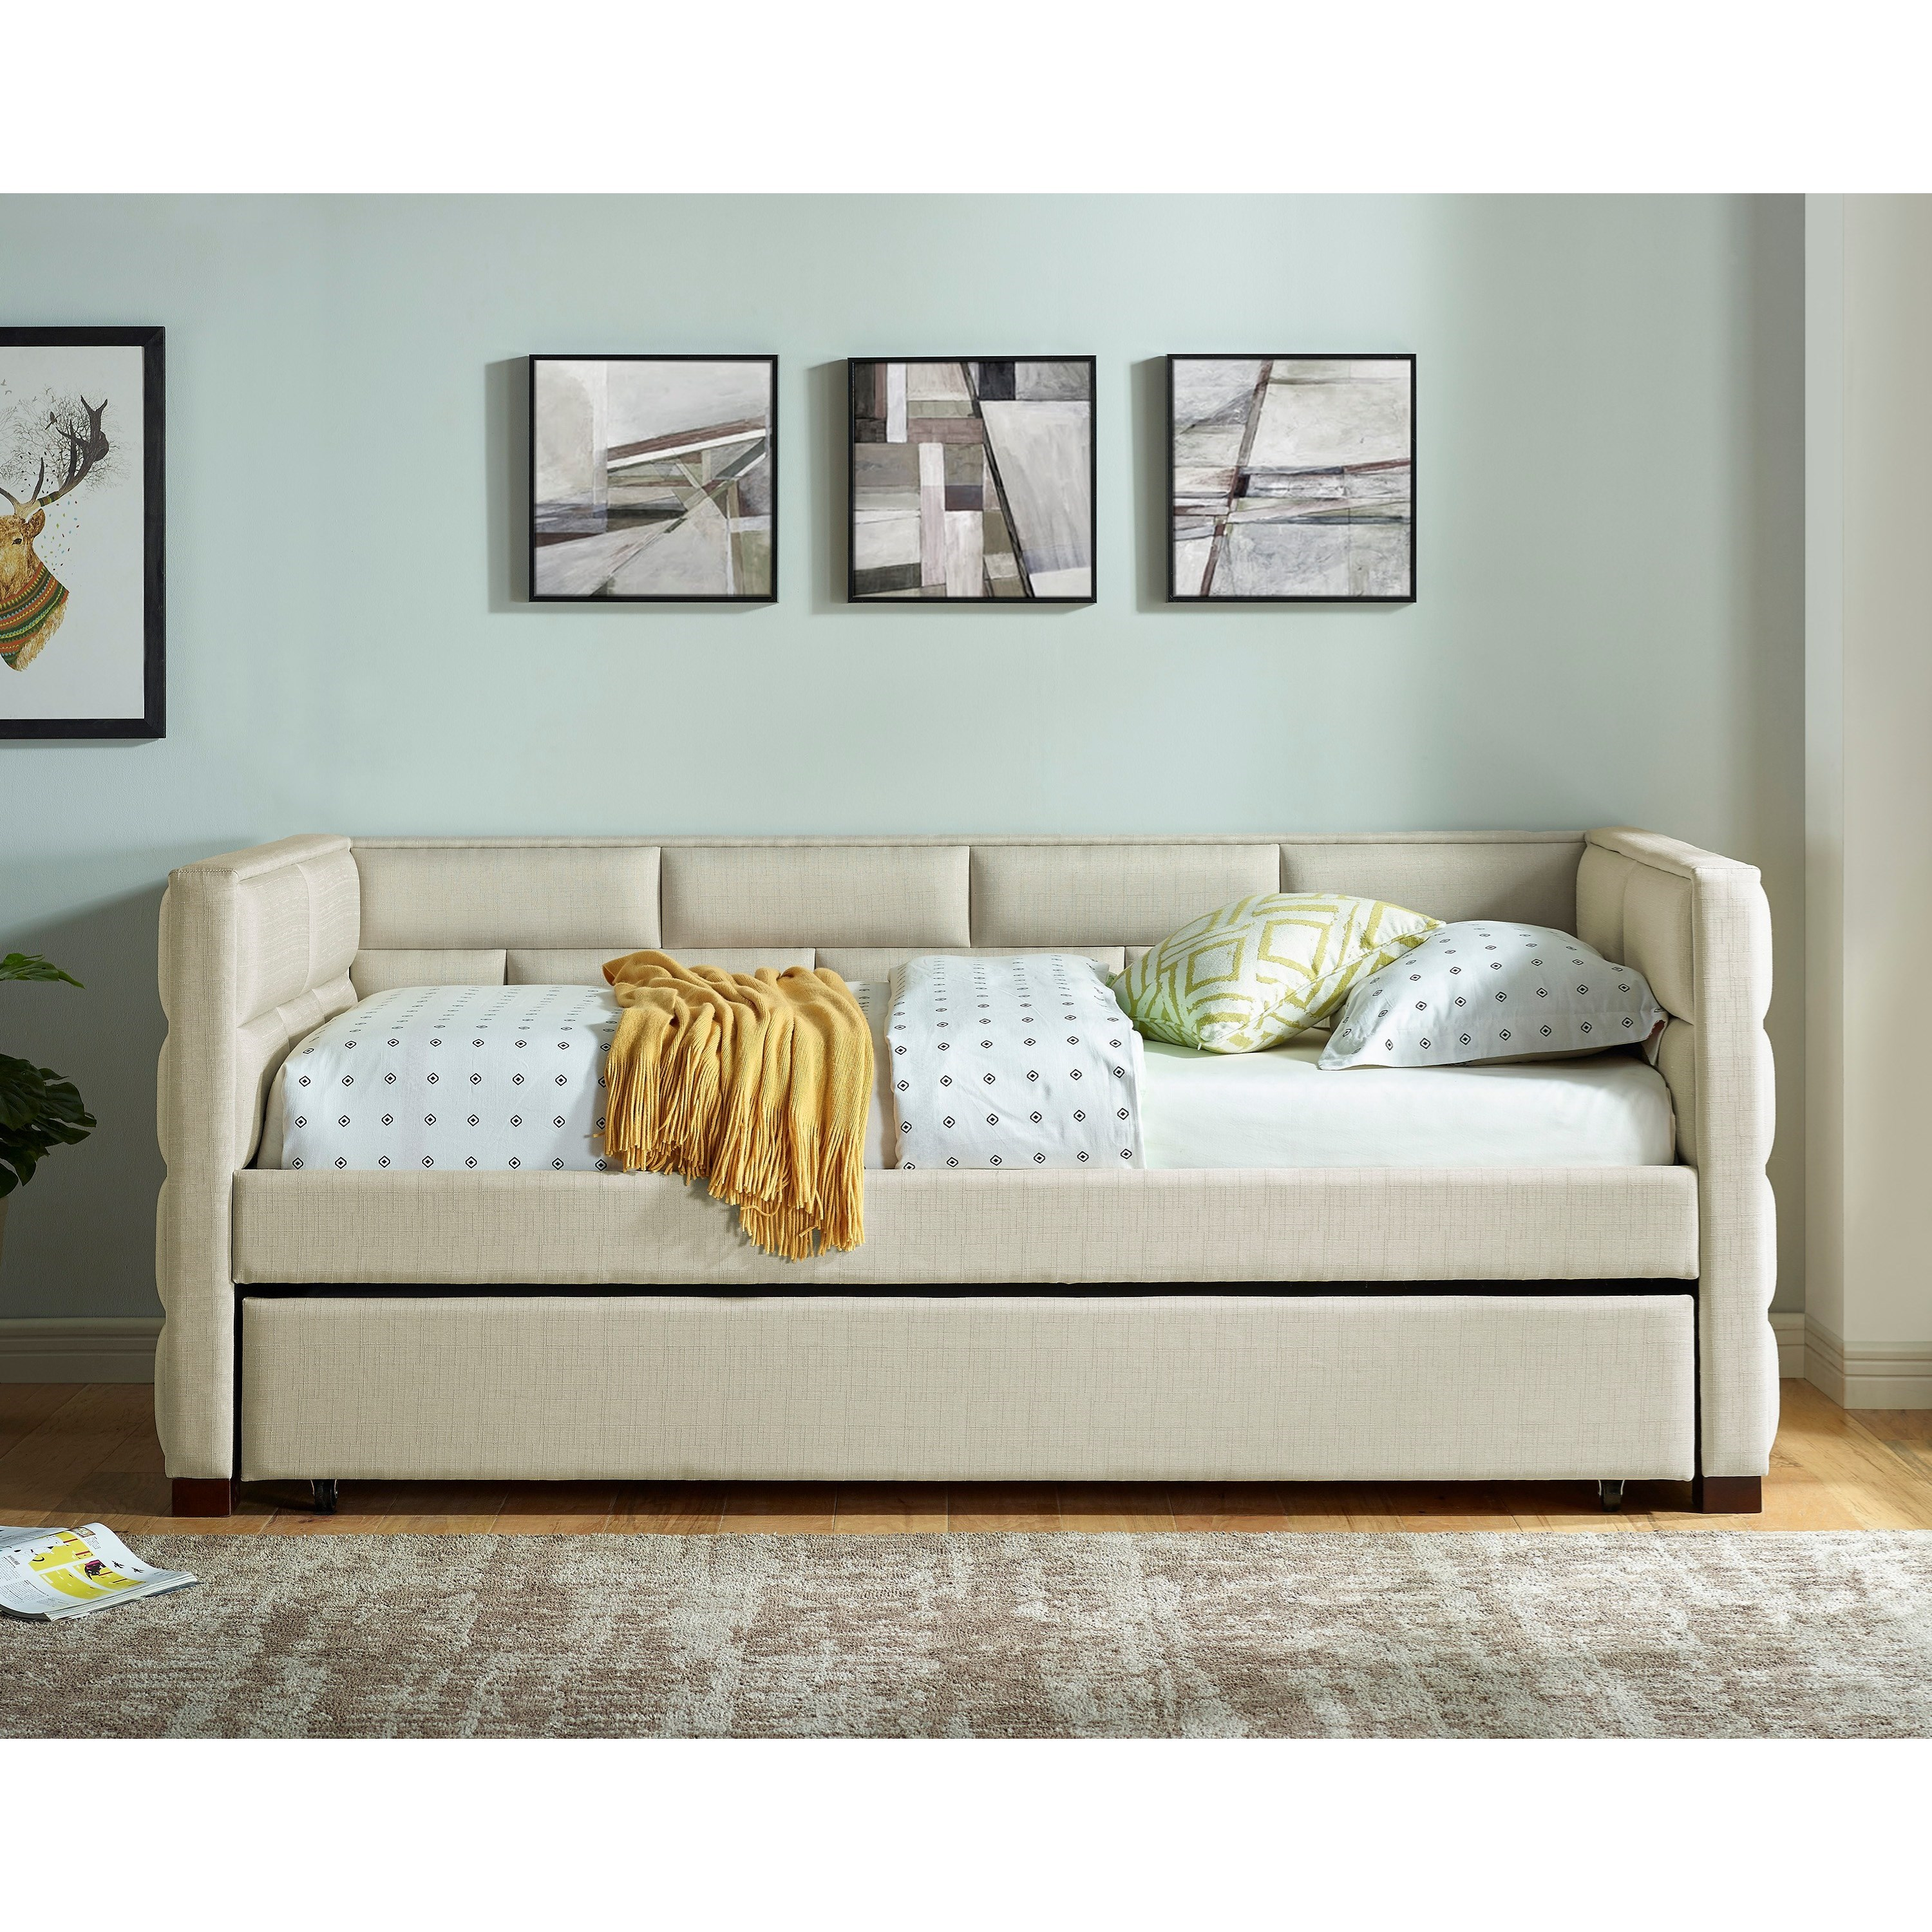 Flannery Upholstered Daybed by Crown Mark at Northeast Factory Direct